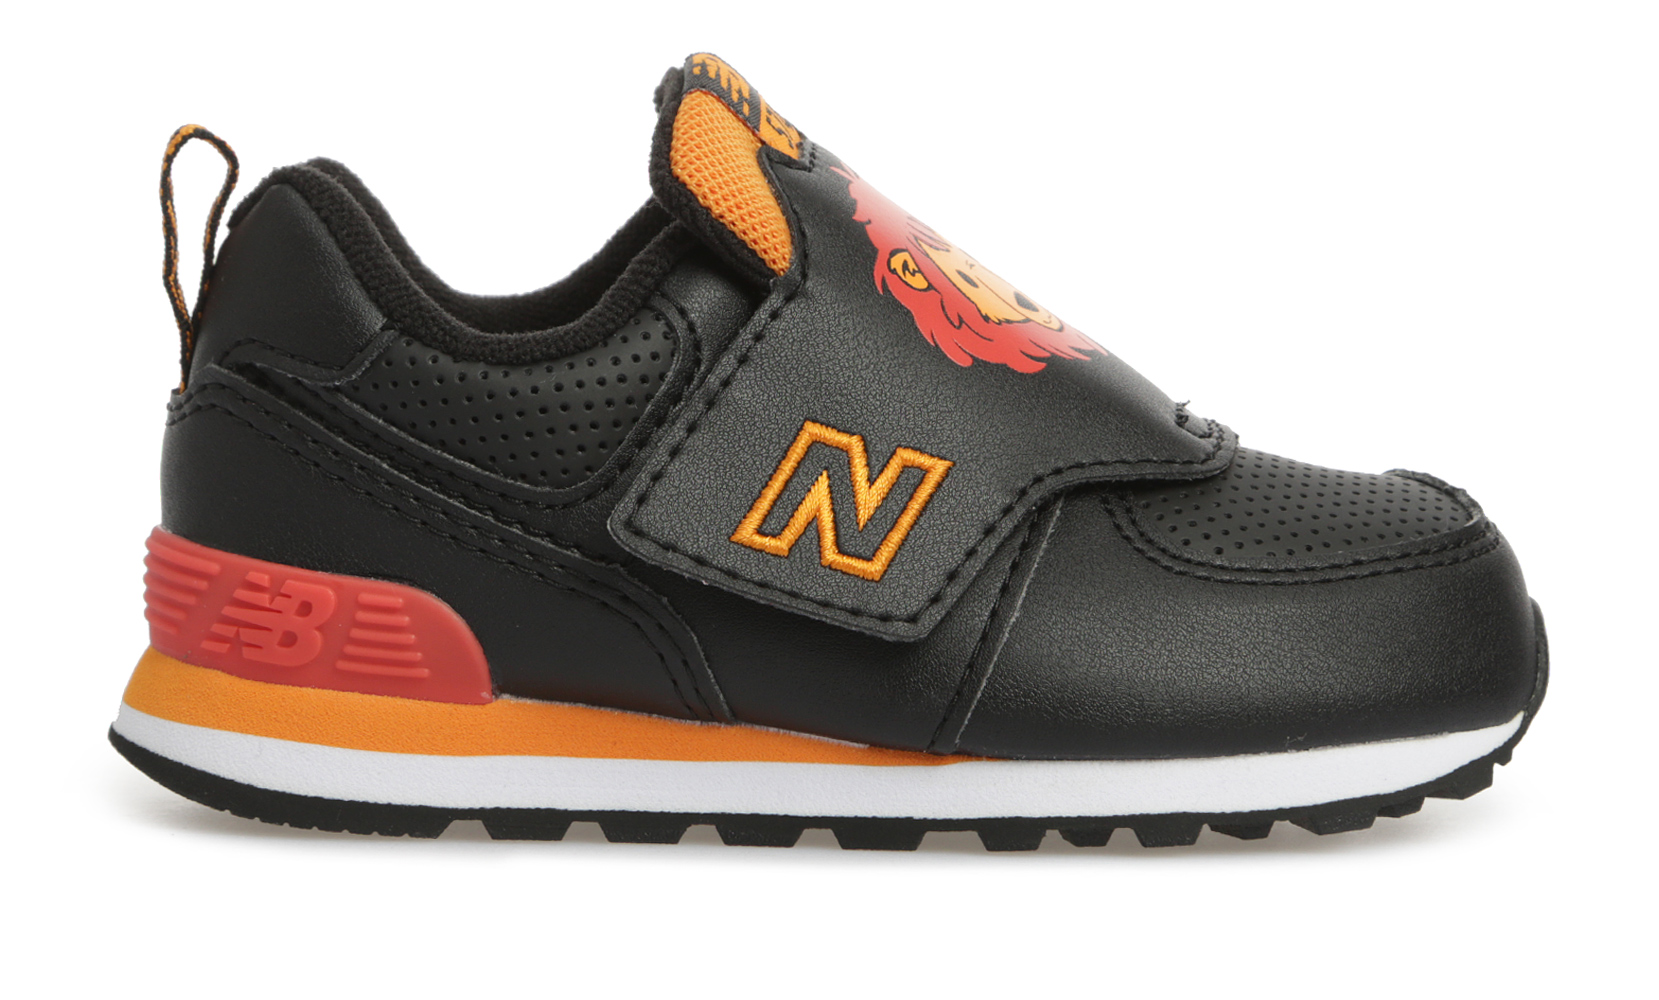 New Balance 574 Zoo IV574ZOL | New Balance